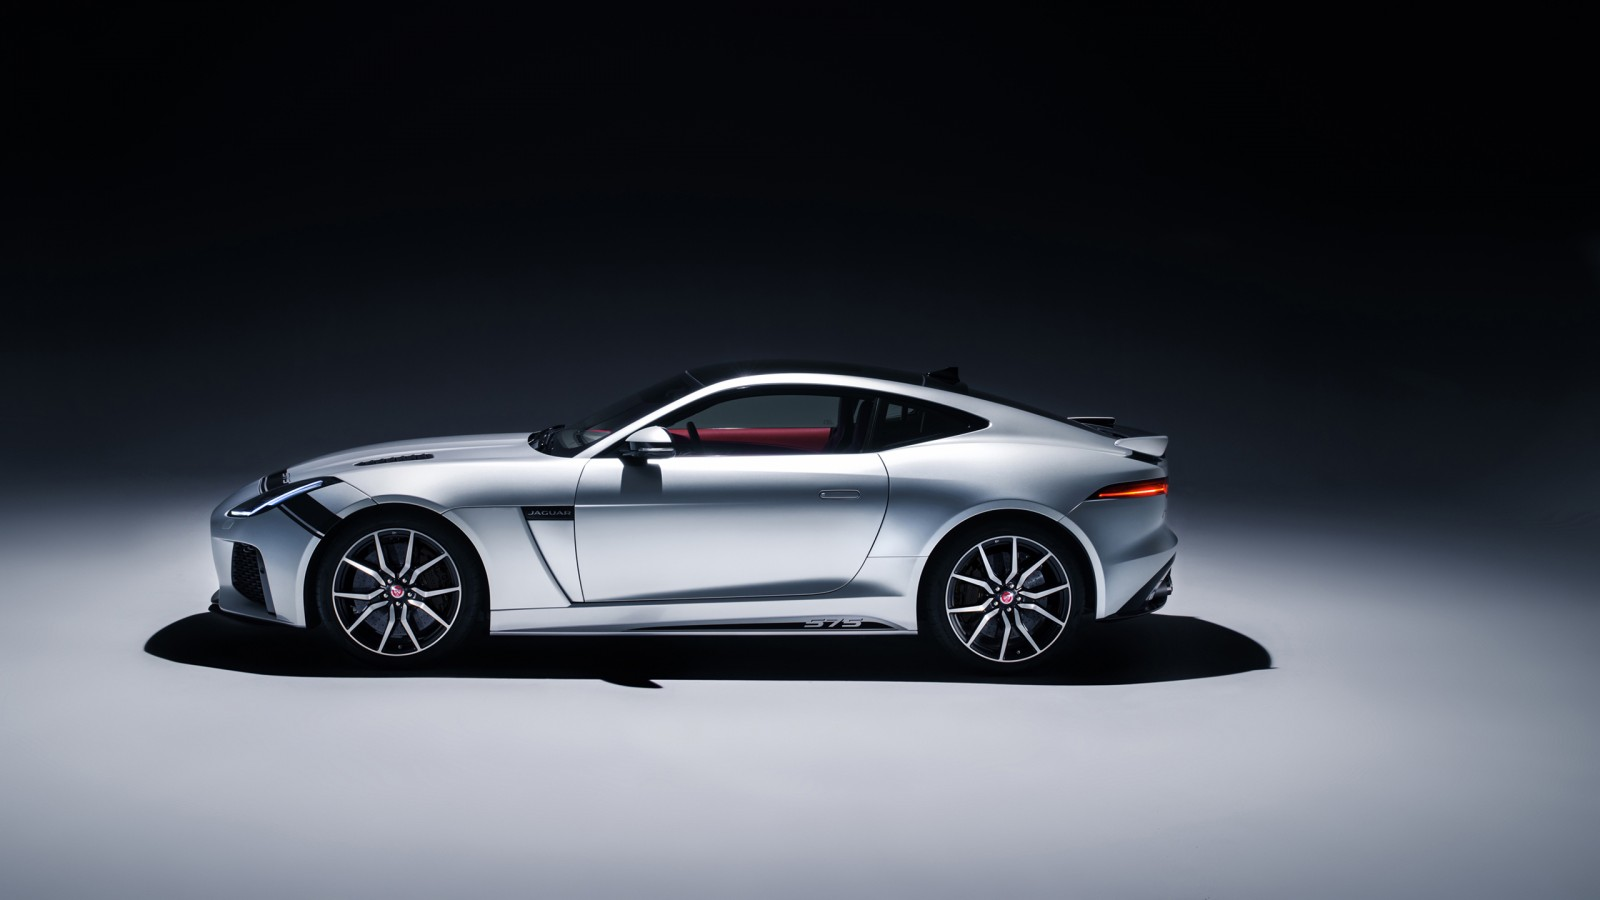 Ultra Hd Wallpapers 8k Cars Pack 2018 Jaguar F Type Svr Graphic Pack Coupe 5 Wallpaper Hd